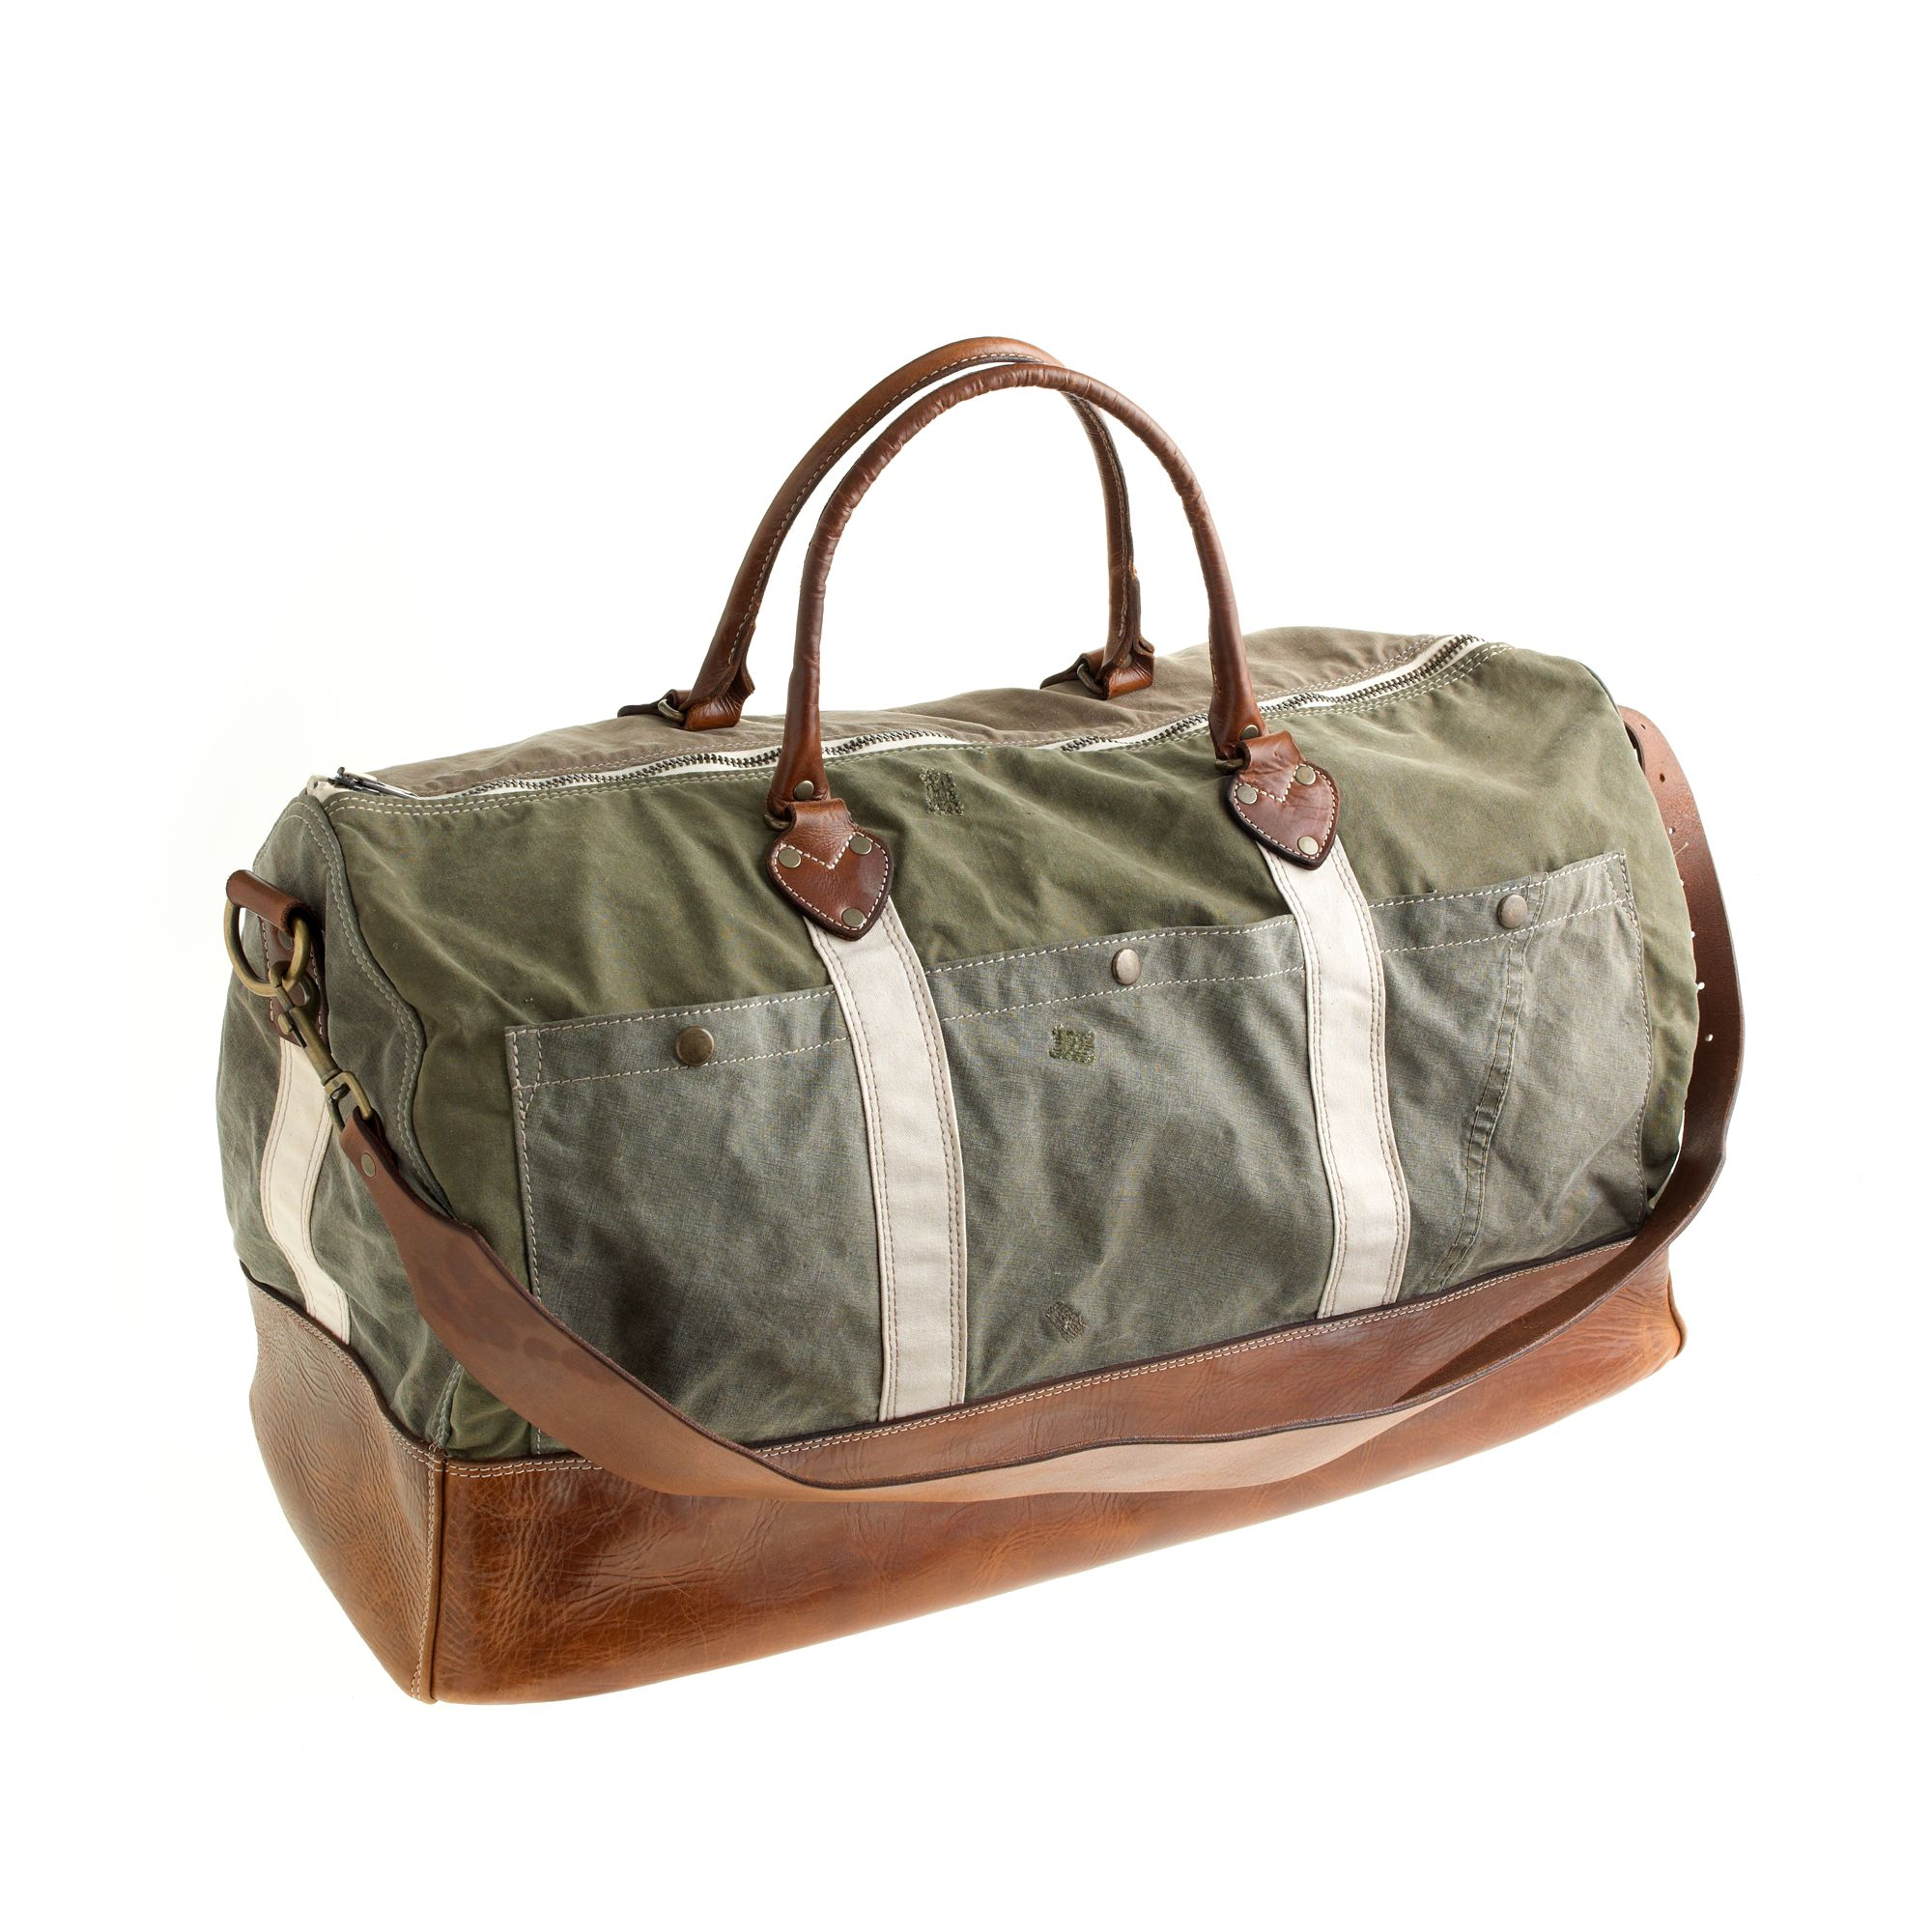 Free shipping on duffel bags and weekend bags at theotherqi.cf Shop for duffels and weekend bags in leather, canvas and more. Totally free shipping and returns.